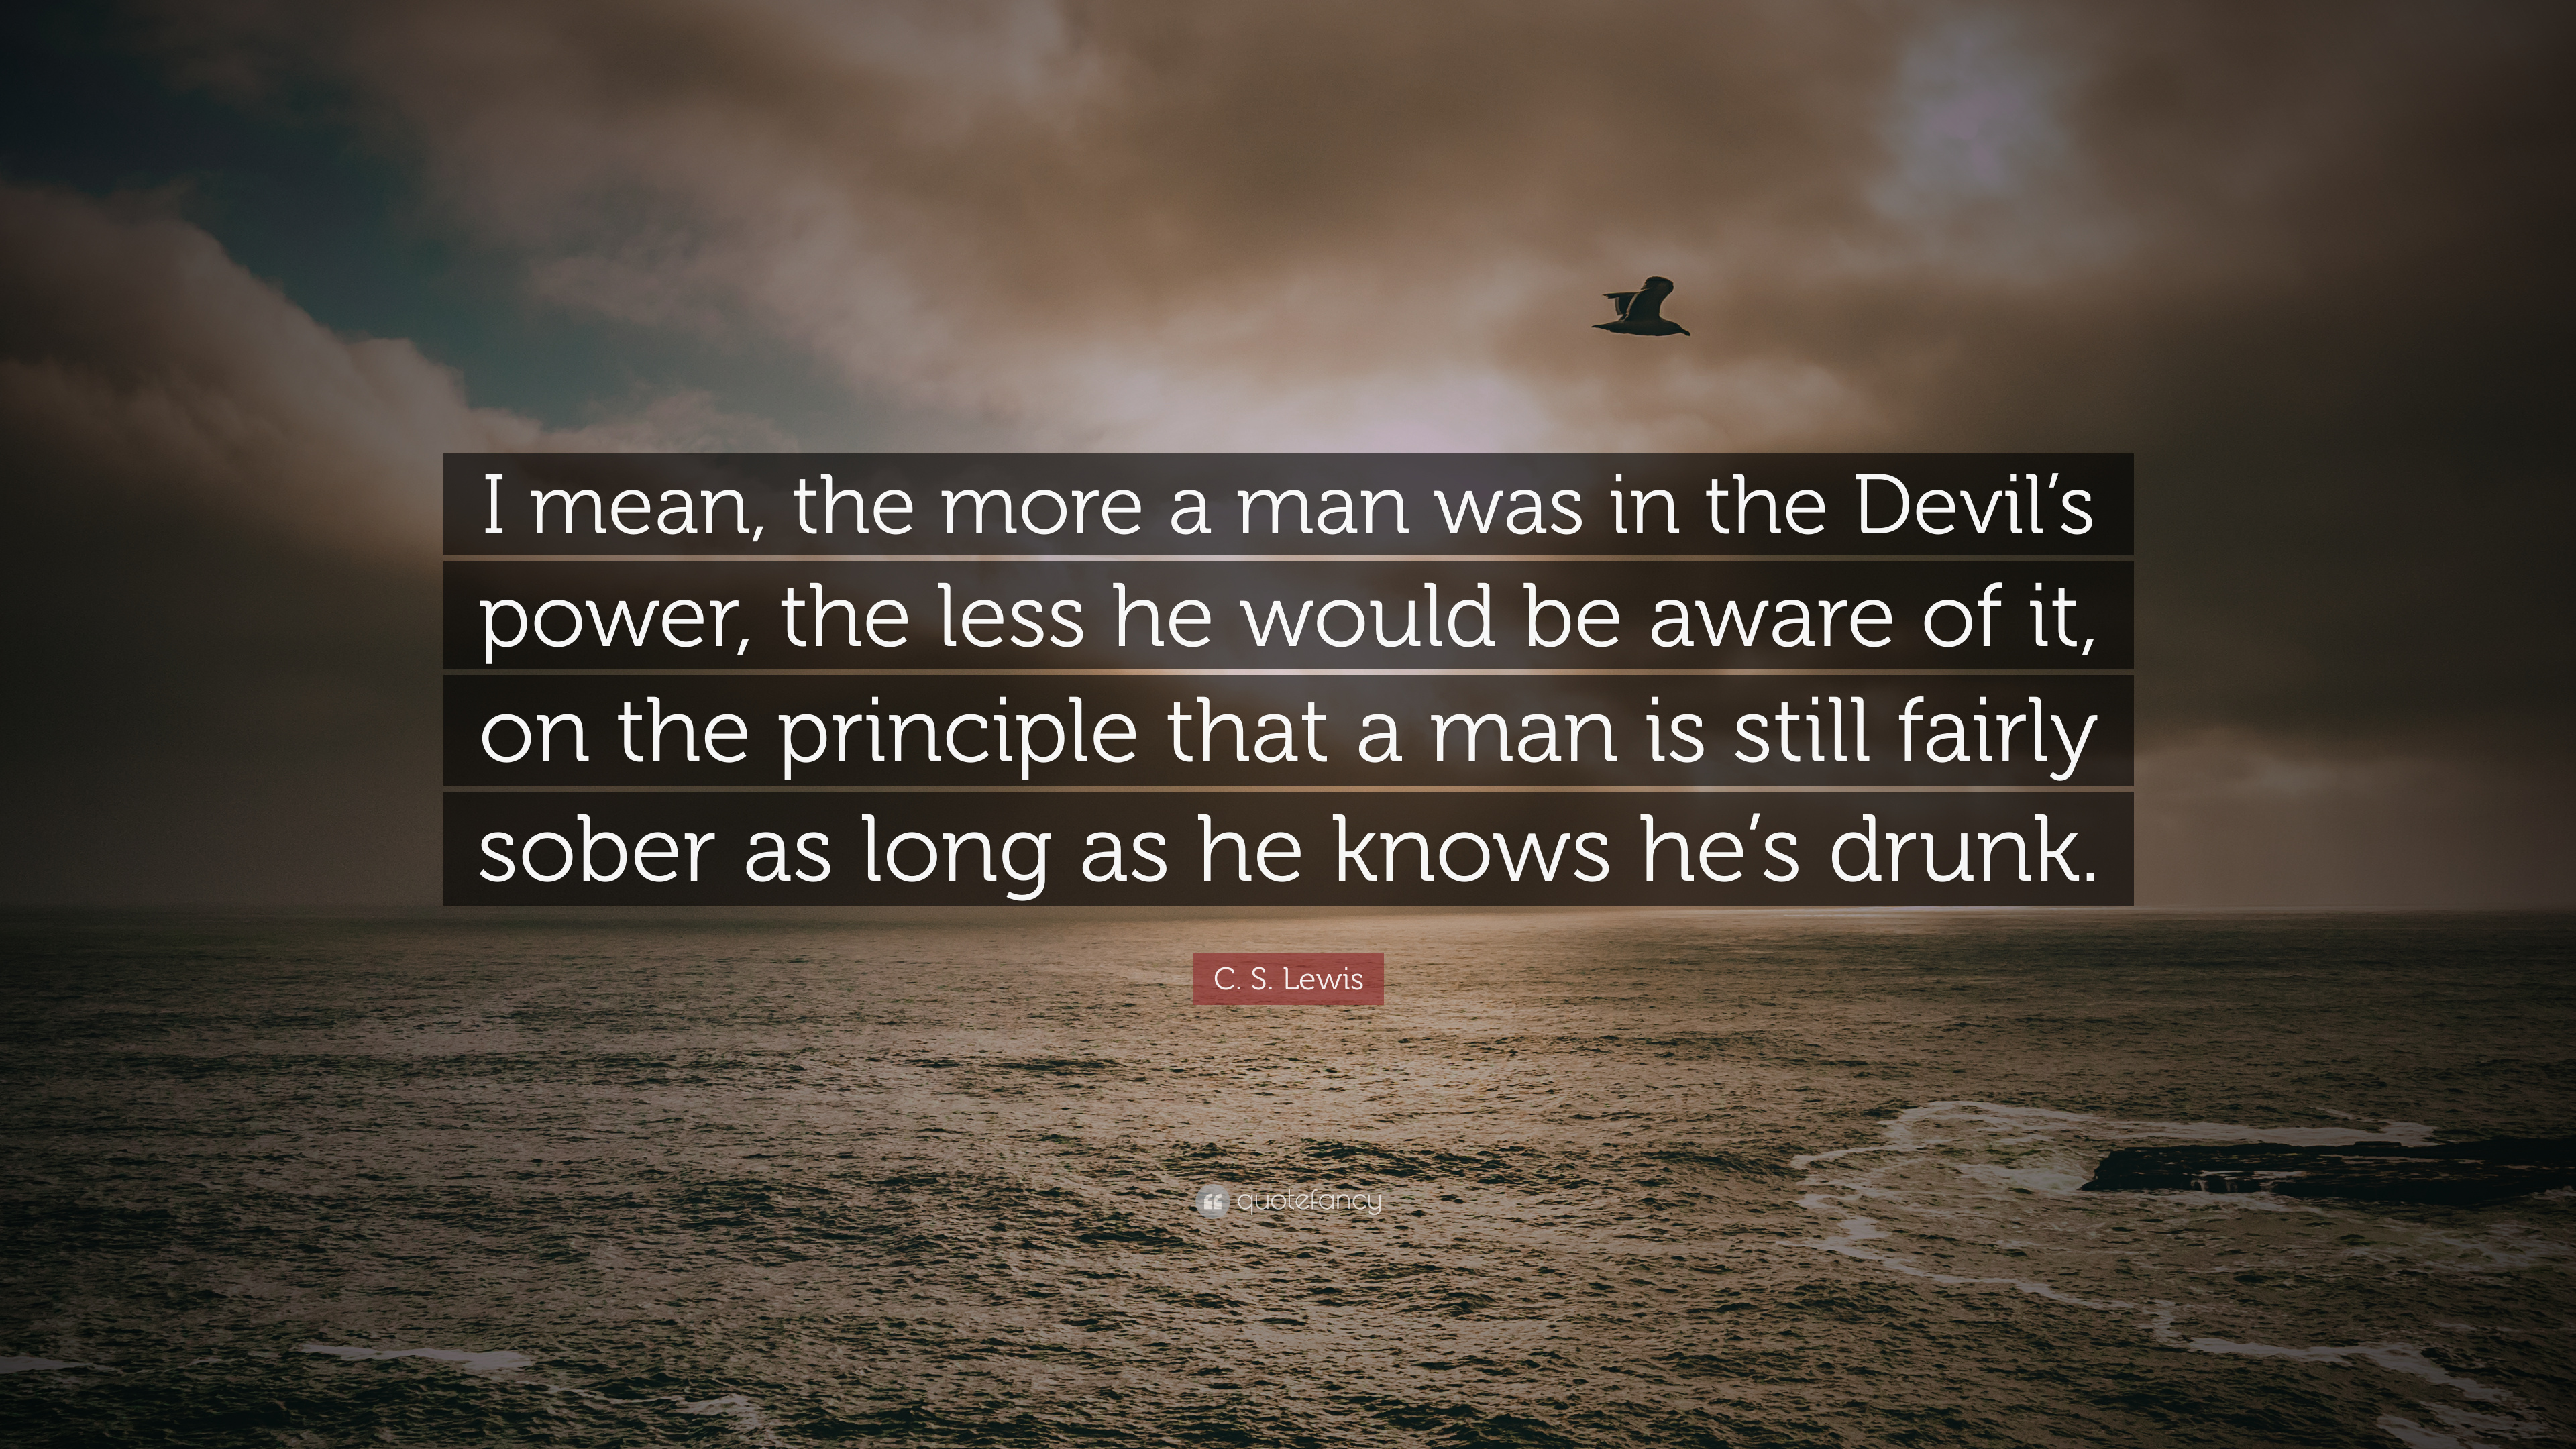 C S Lewis Quote I Mean The More A Man Was In The Devils Power